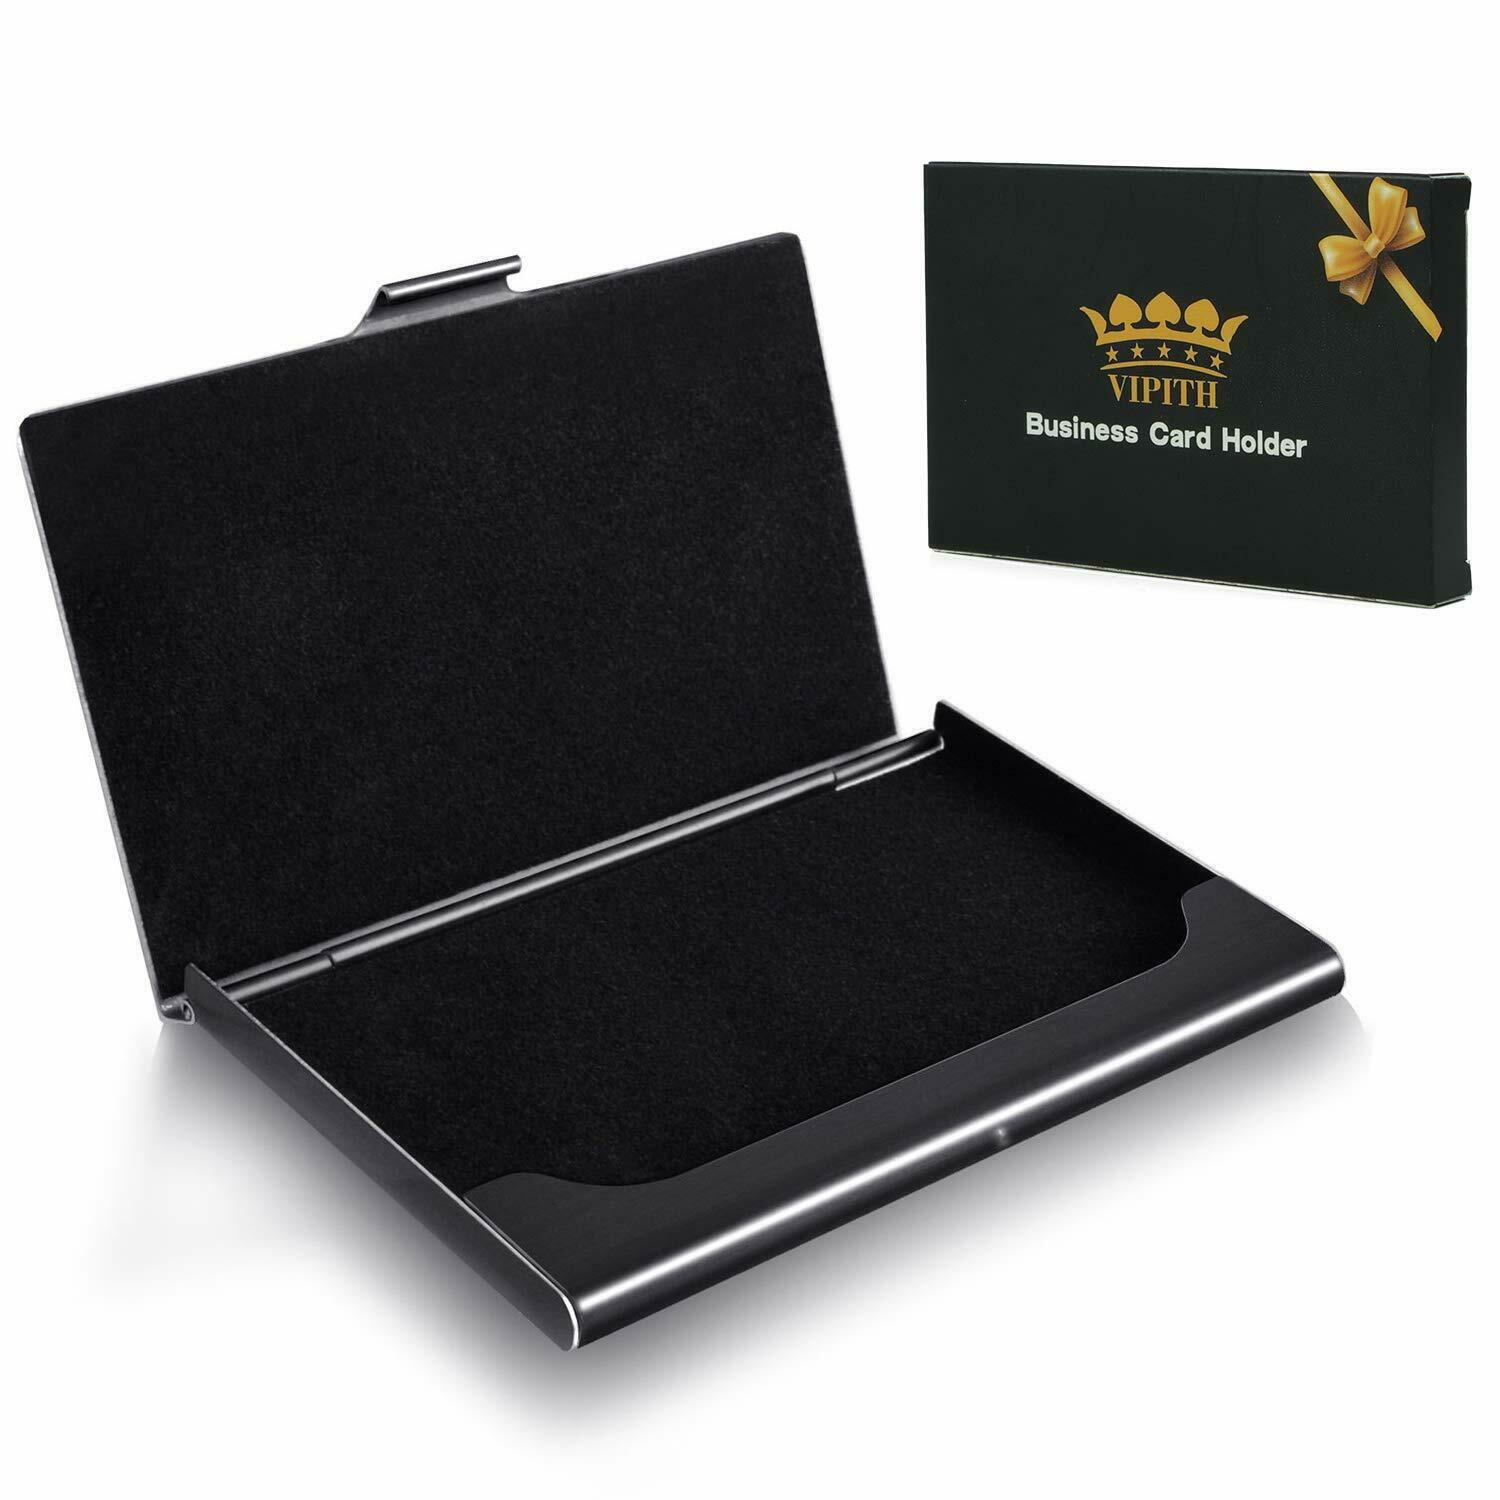 WOVTE Super Light Business Card Holder Stainless Steel Business Card Case-Black